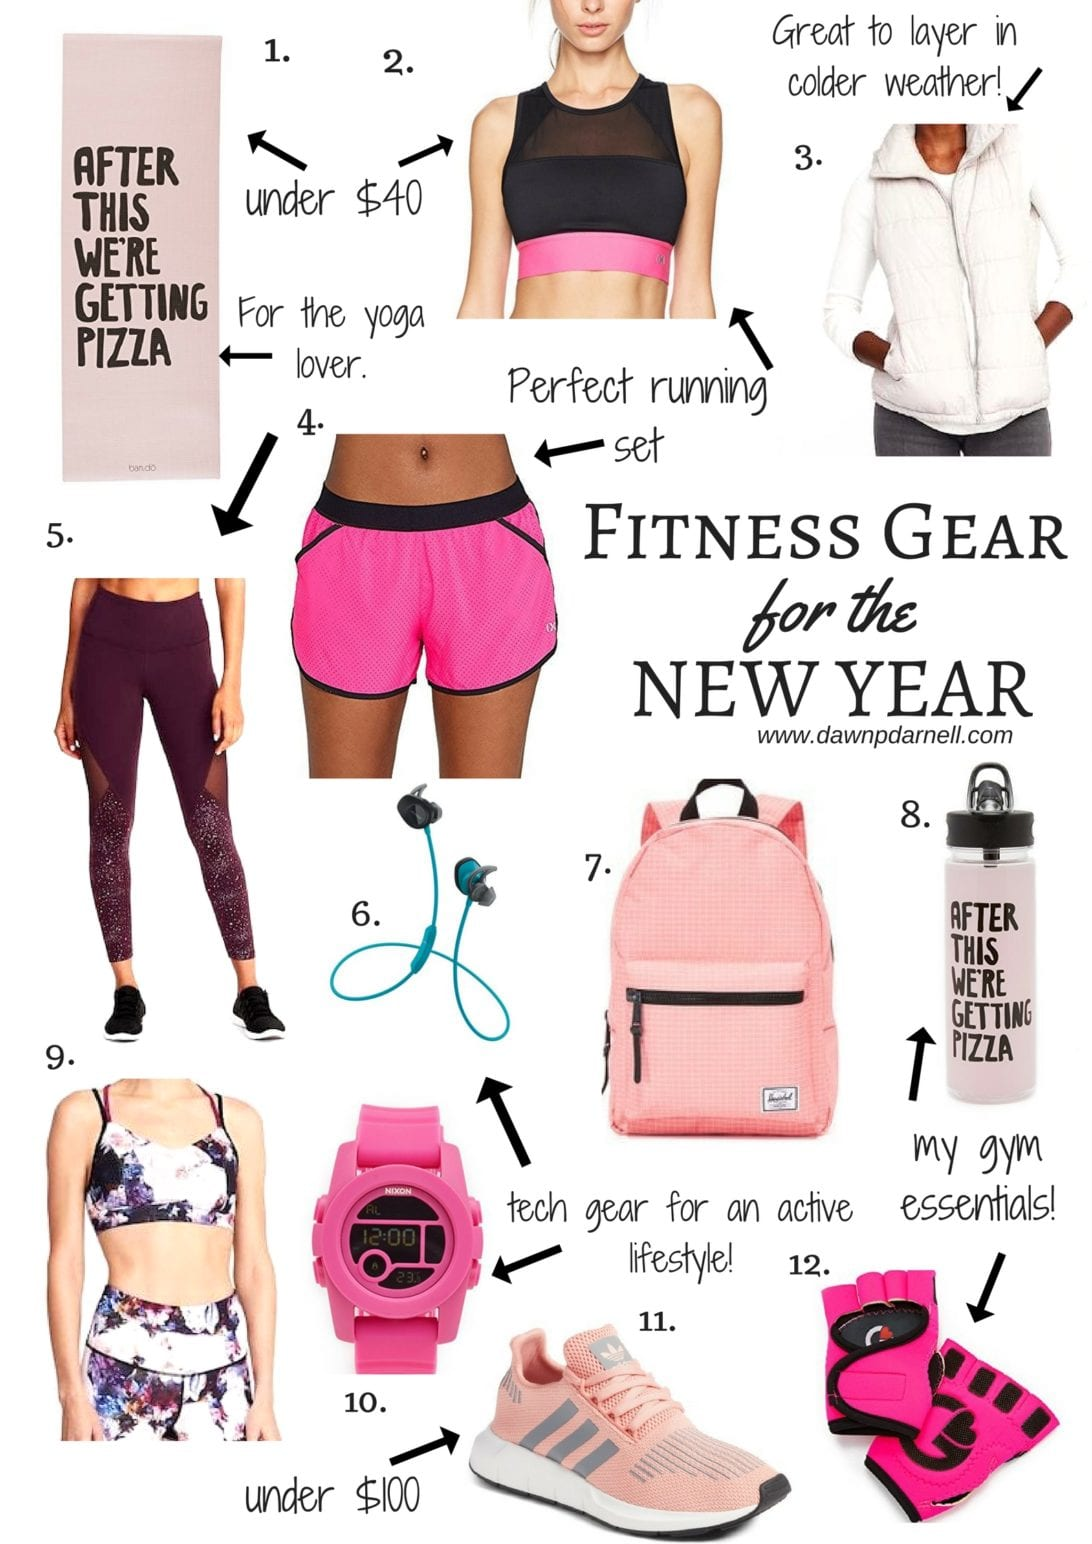 fitness gear, workout outfit, fitness style, fitness outfit, fitness fashion, winter fitness fashion, old navy activewear , fitness gear for the new year, fitness gift guide, new year resolutions, nike air Thea, fitness resolutions, pom beanie